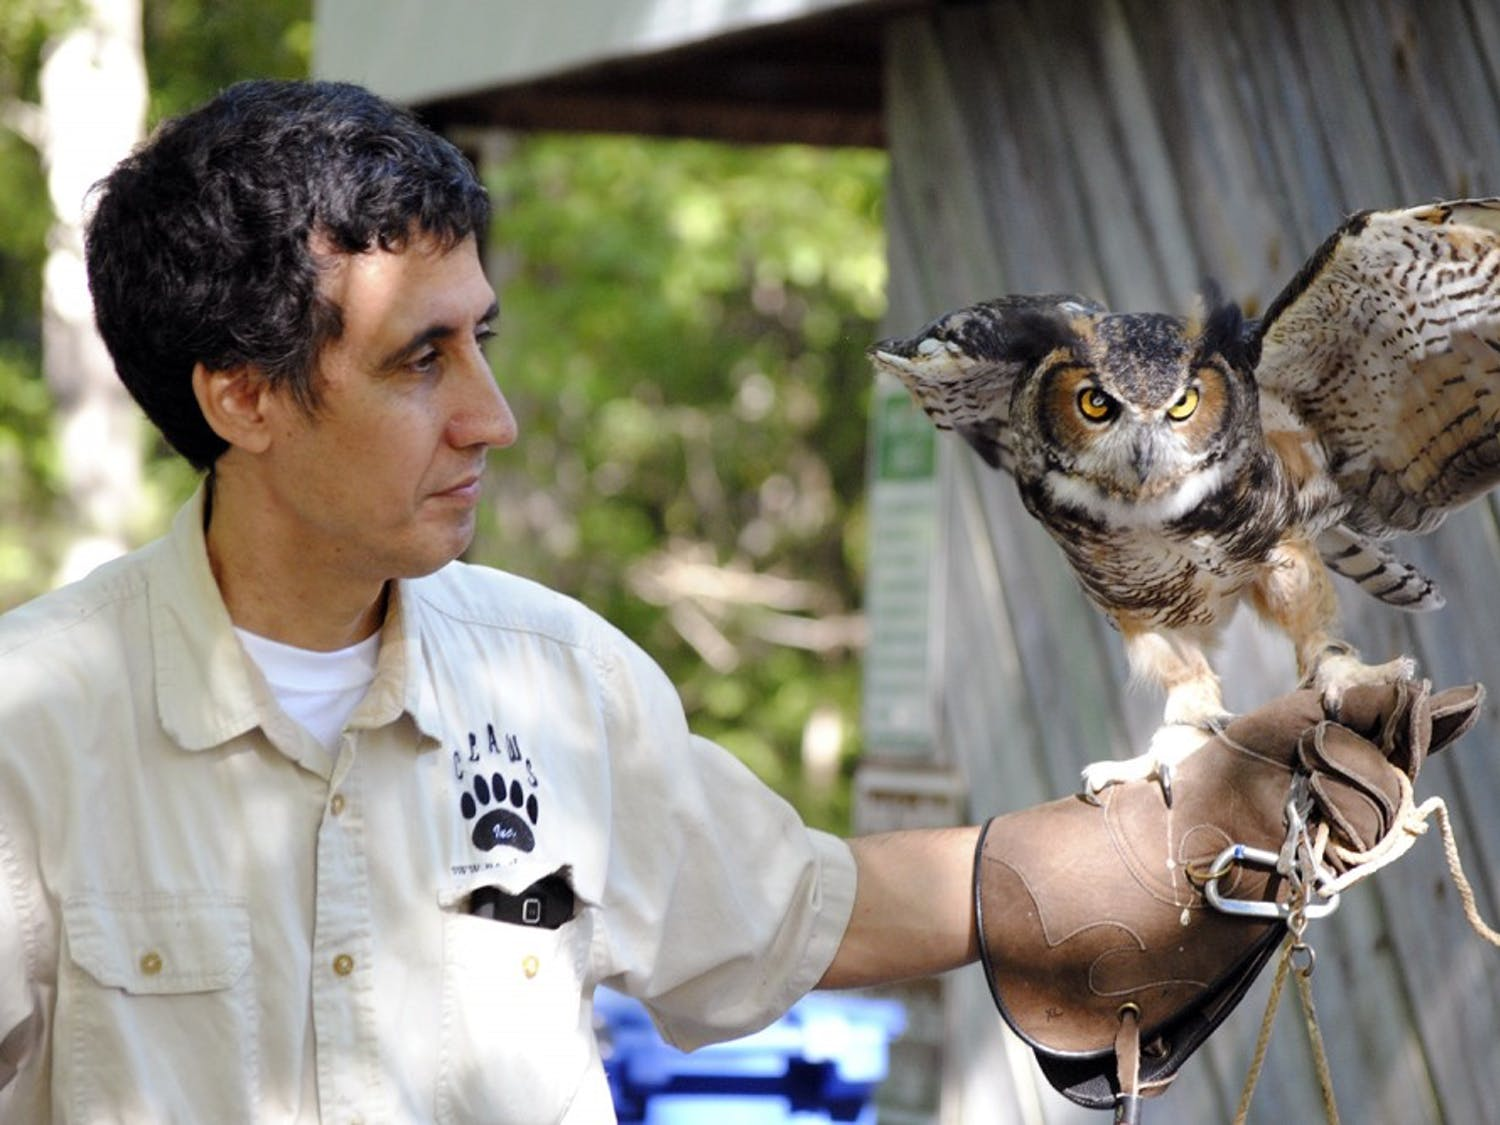 Vinny Mammone, treasurer for Claws Inc., holds one of the organization's permanent residents Khalitra, a great horned owl who is blind in one eye.